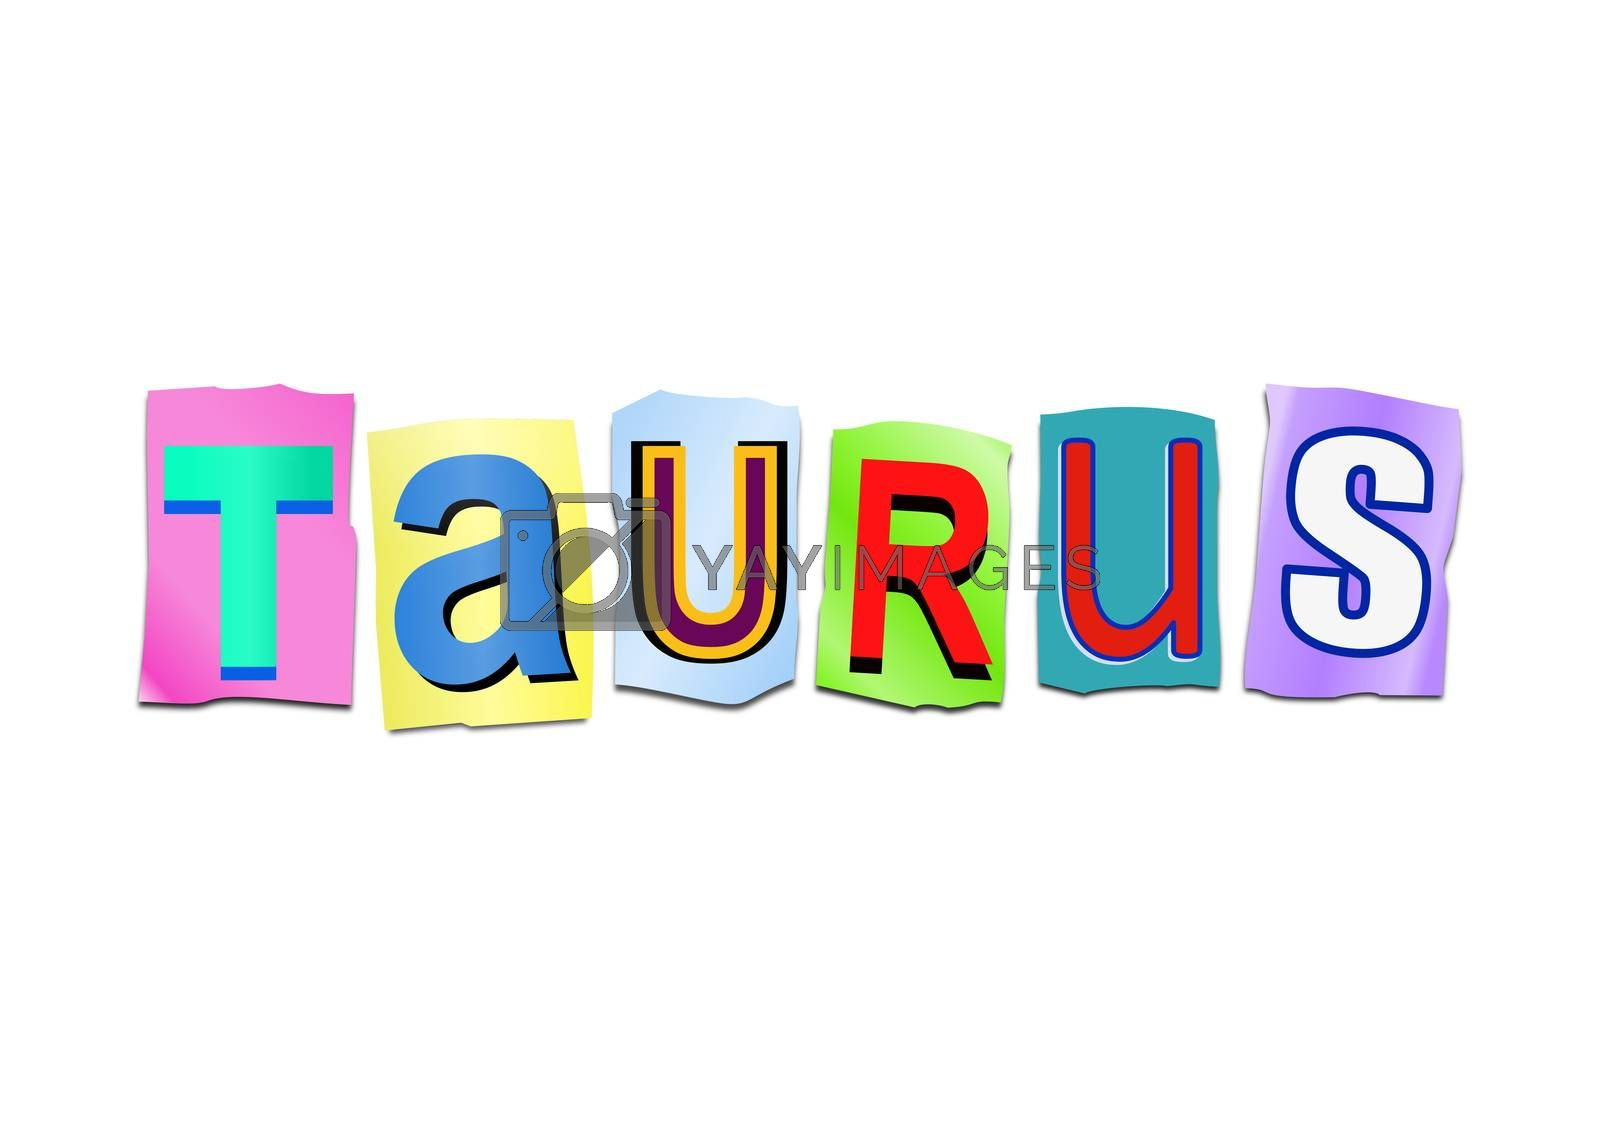 Illustration depicting a set of cut out printed letters arranged to form the word taurus.